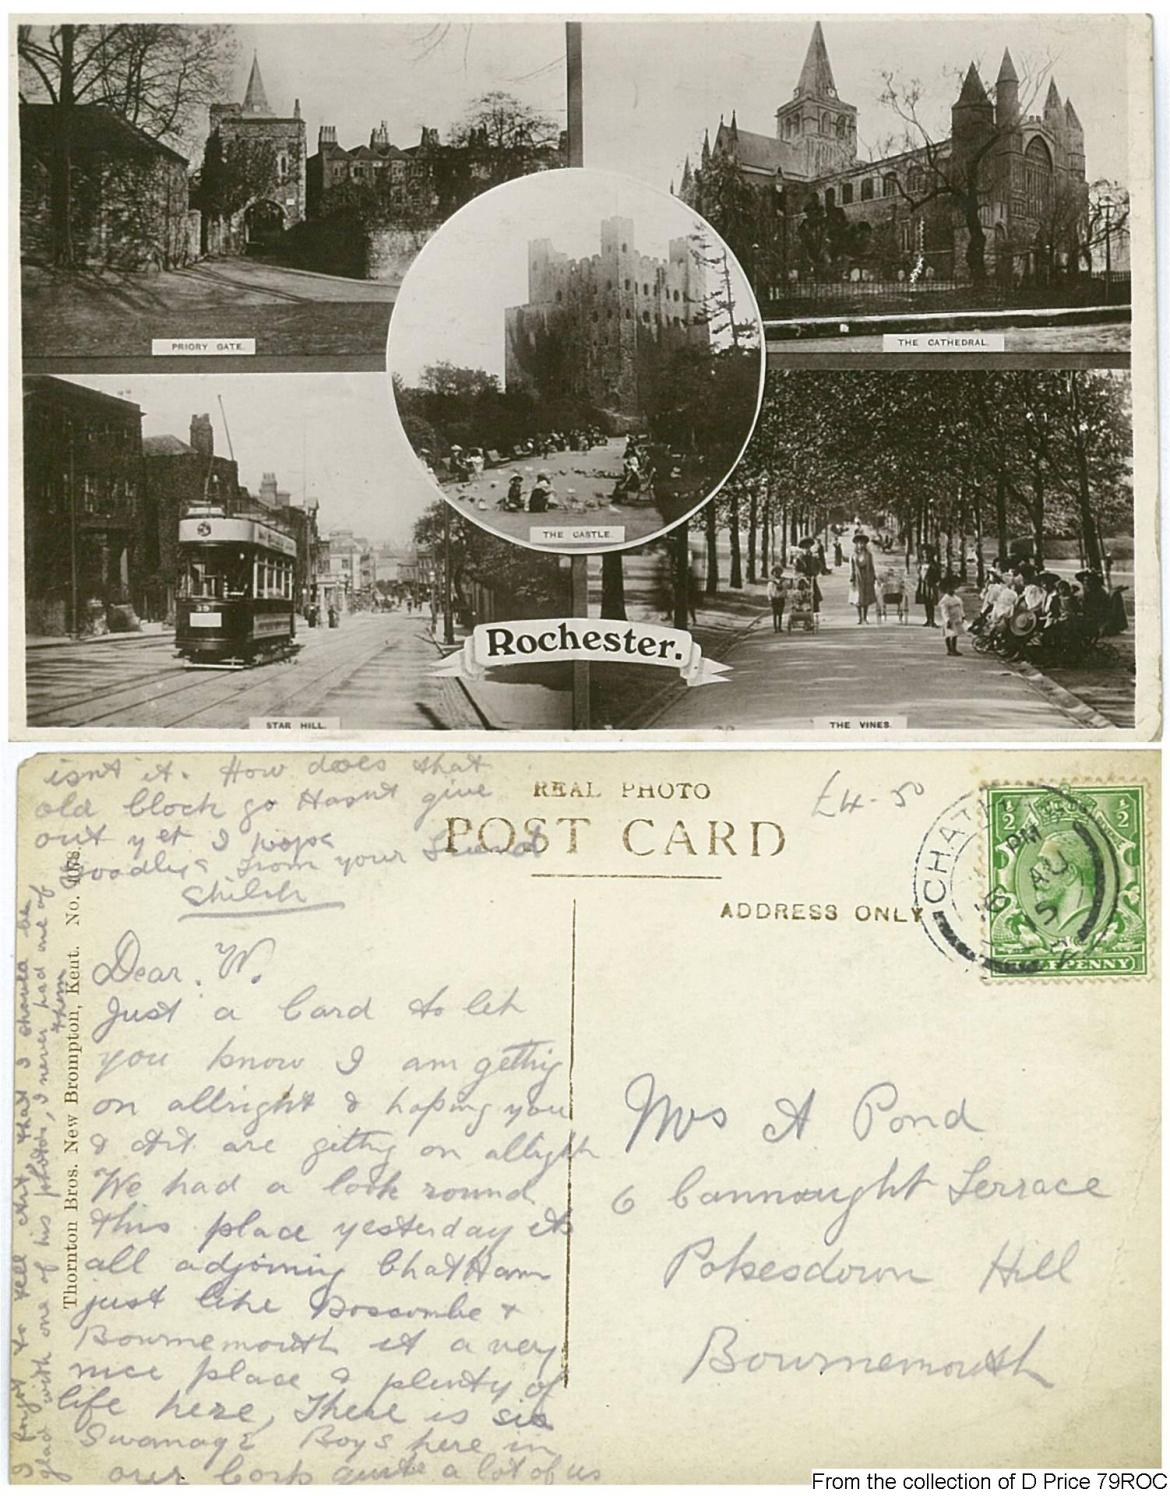 79ROC - Rochester Postcard (Front & Back)